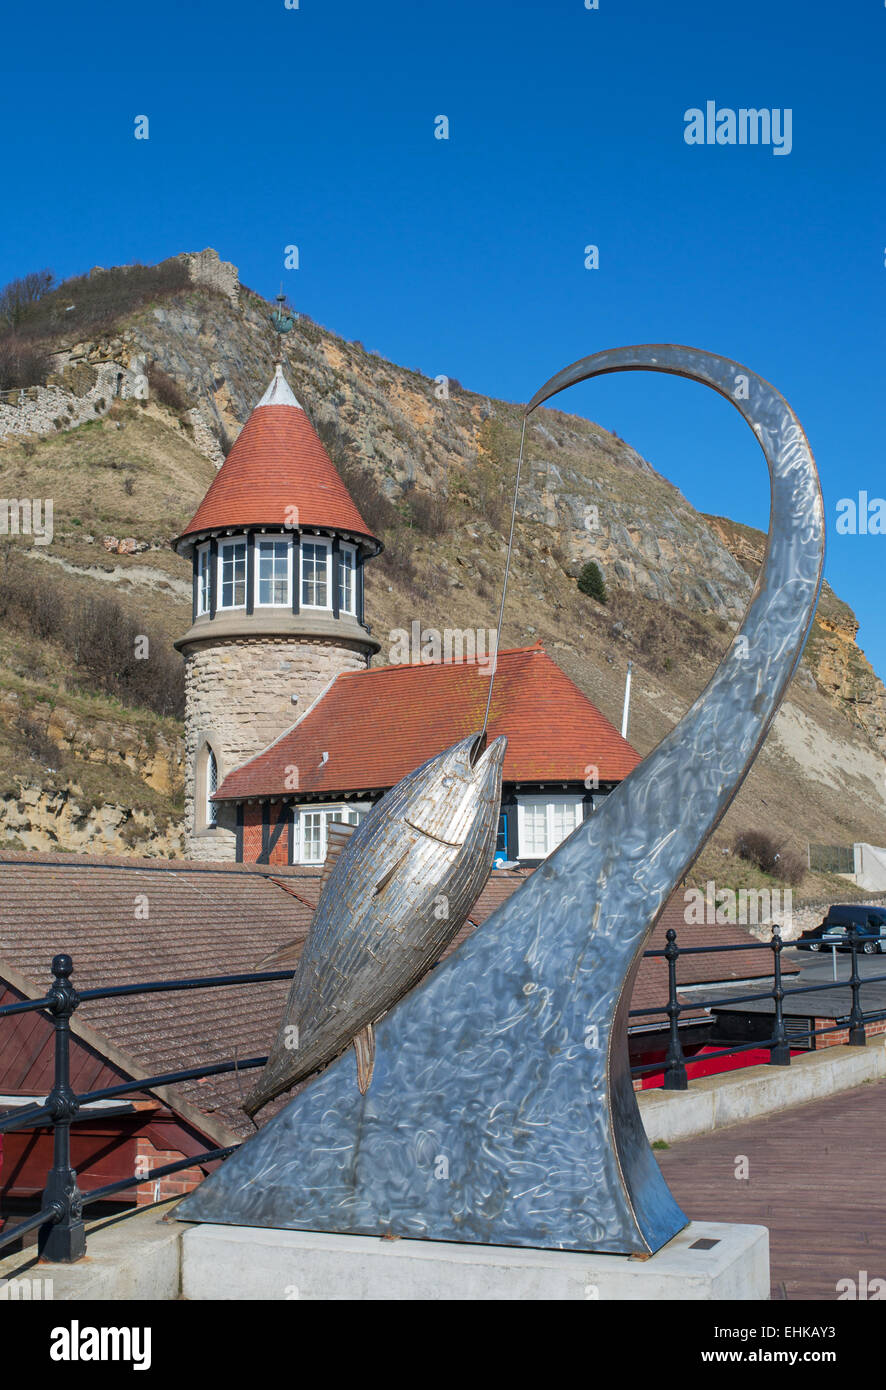 The Tunny sculpture Scarborough, by sculptor Ray Lonsdale, North Yorkshire, UK - Stock Image